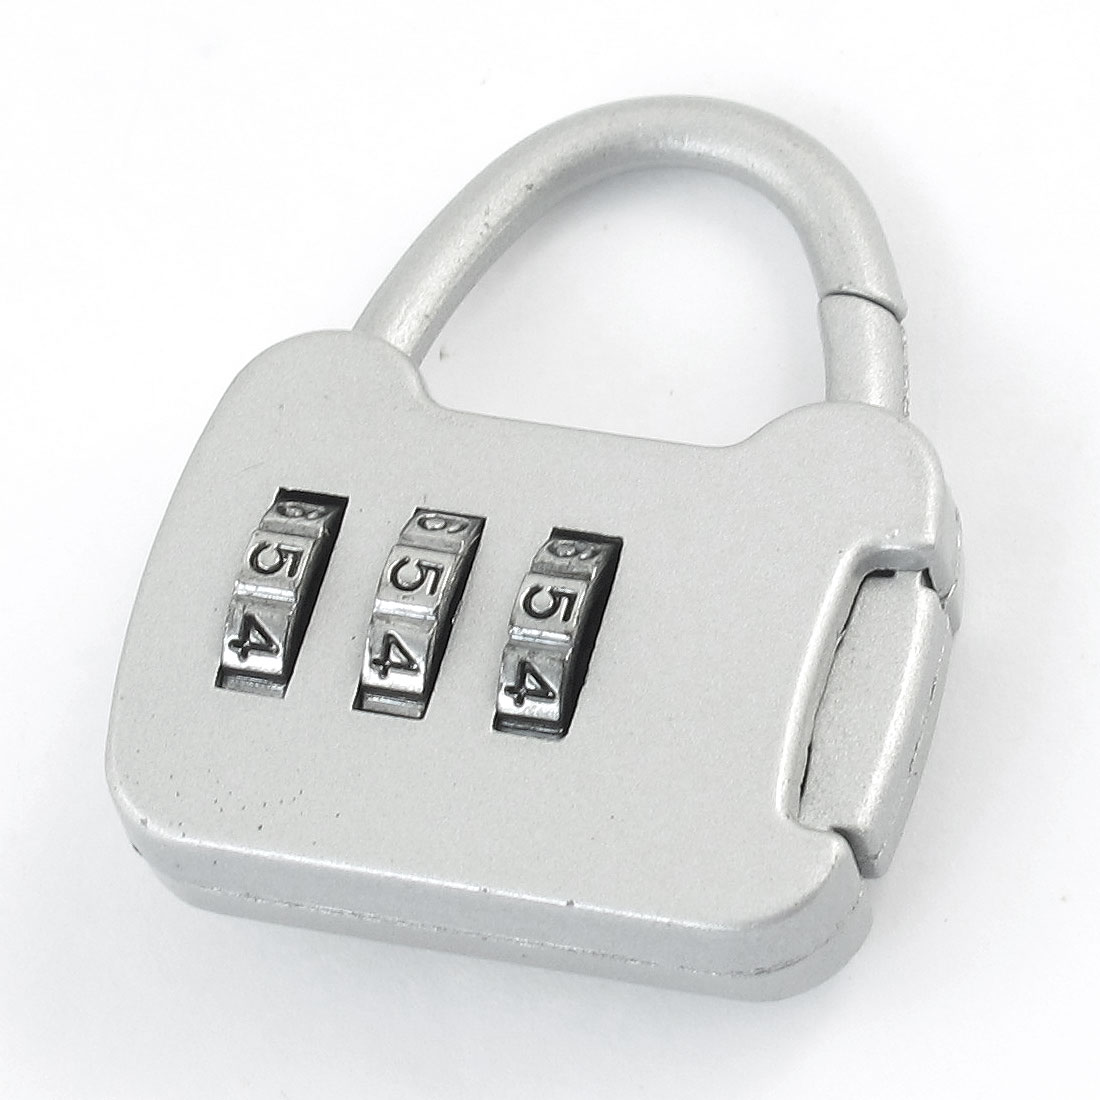 Travel Light Gray Plastic Luggage Suitcase Bag Code Lock Padlock